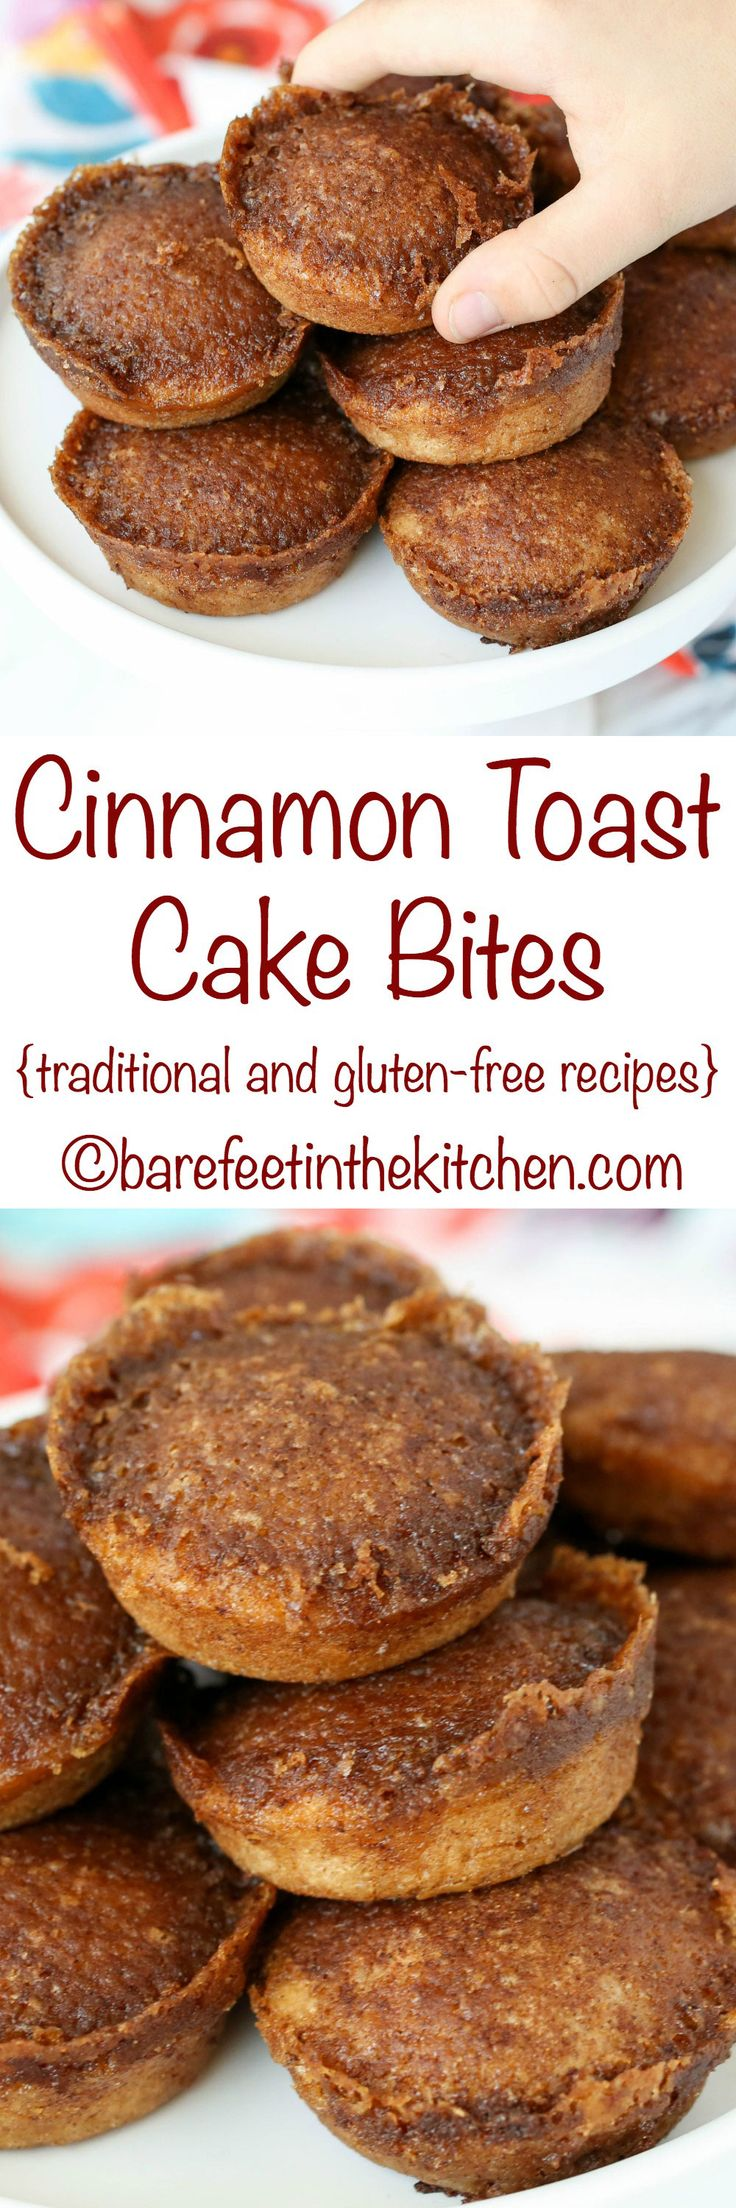 Cinnamon Toast Cake Bites are a favorite with kids and adults! #ad - Get the recipe at barefeetinthekitchen.com